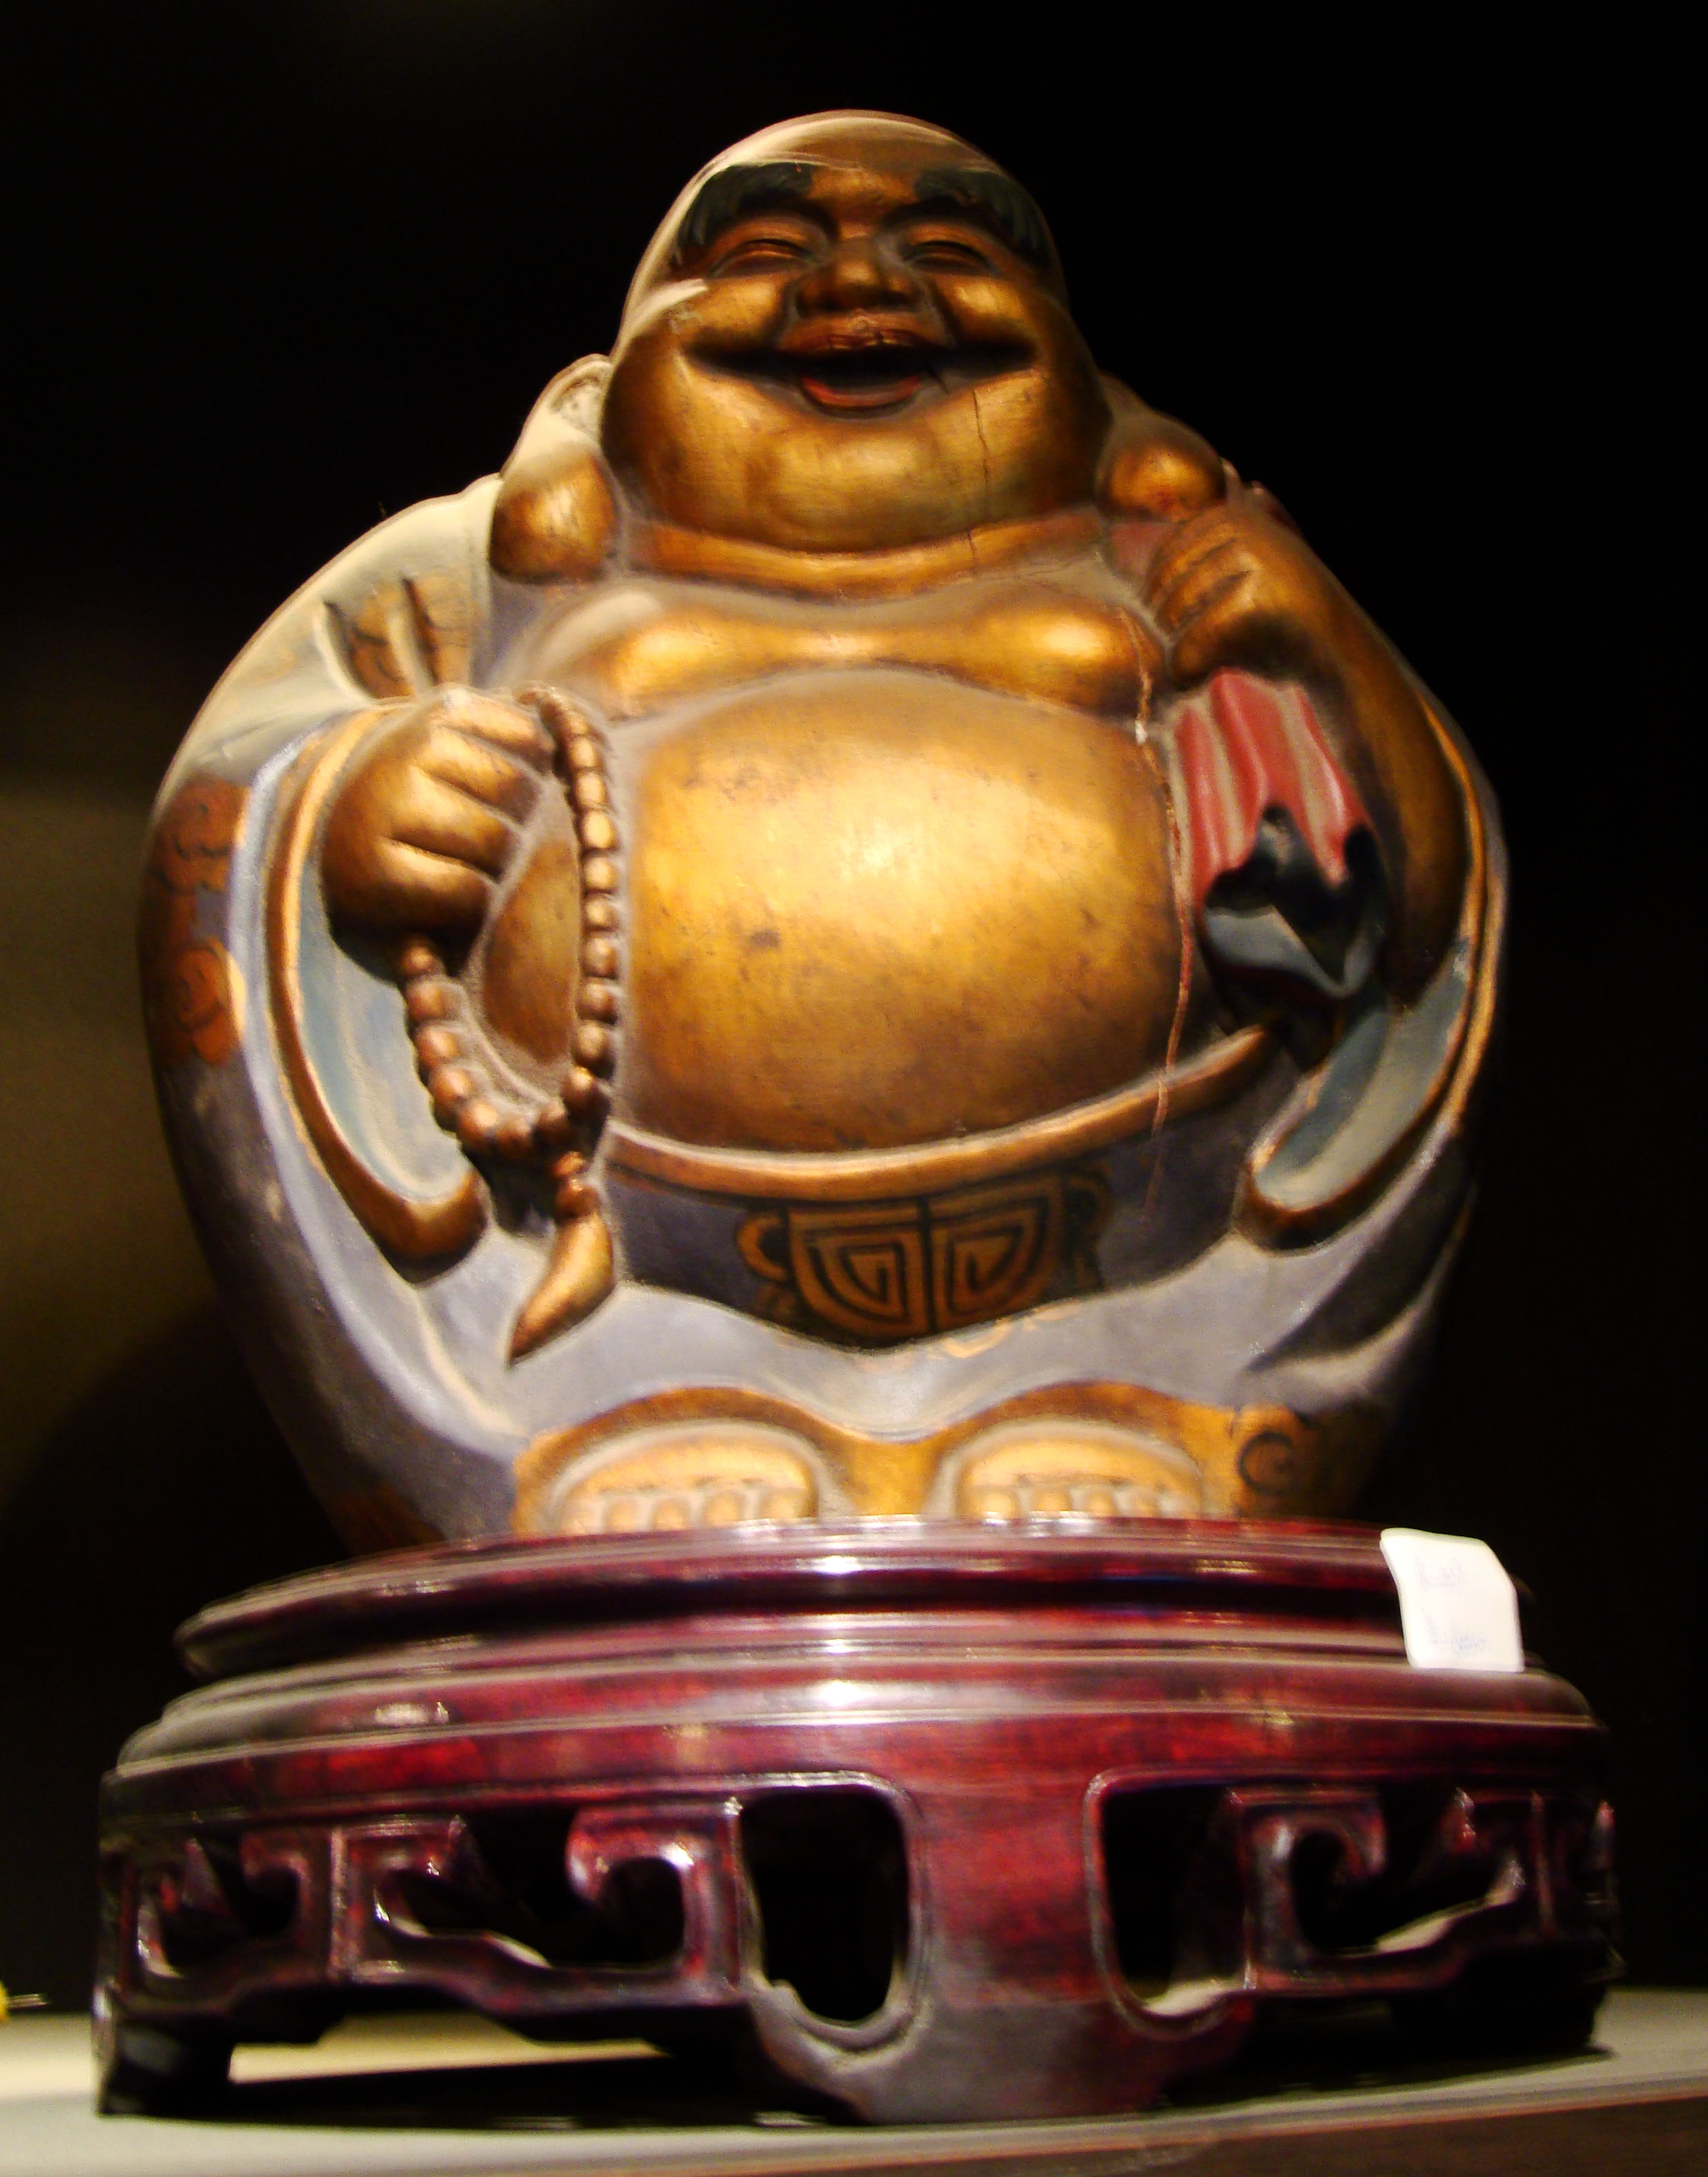 clay buddhist singles Join the largest christian dating site sign up for free and connect with other christian singles looking for love based on faith.